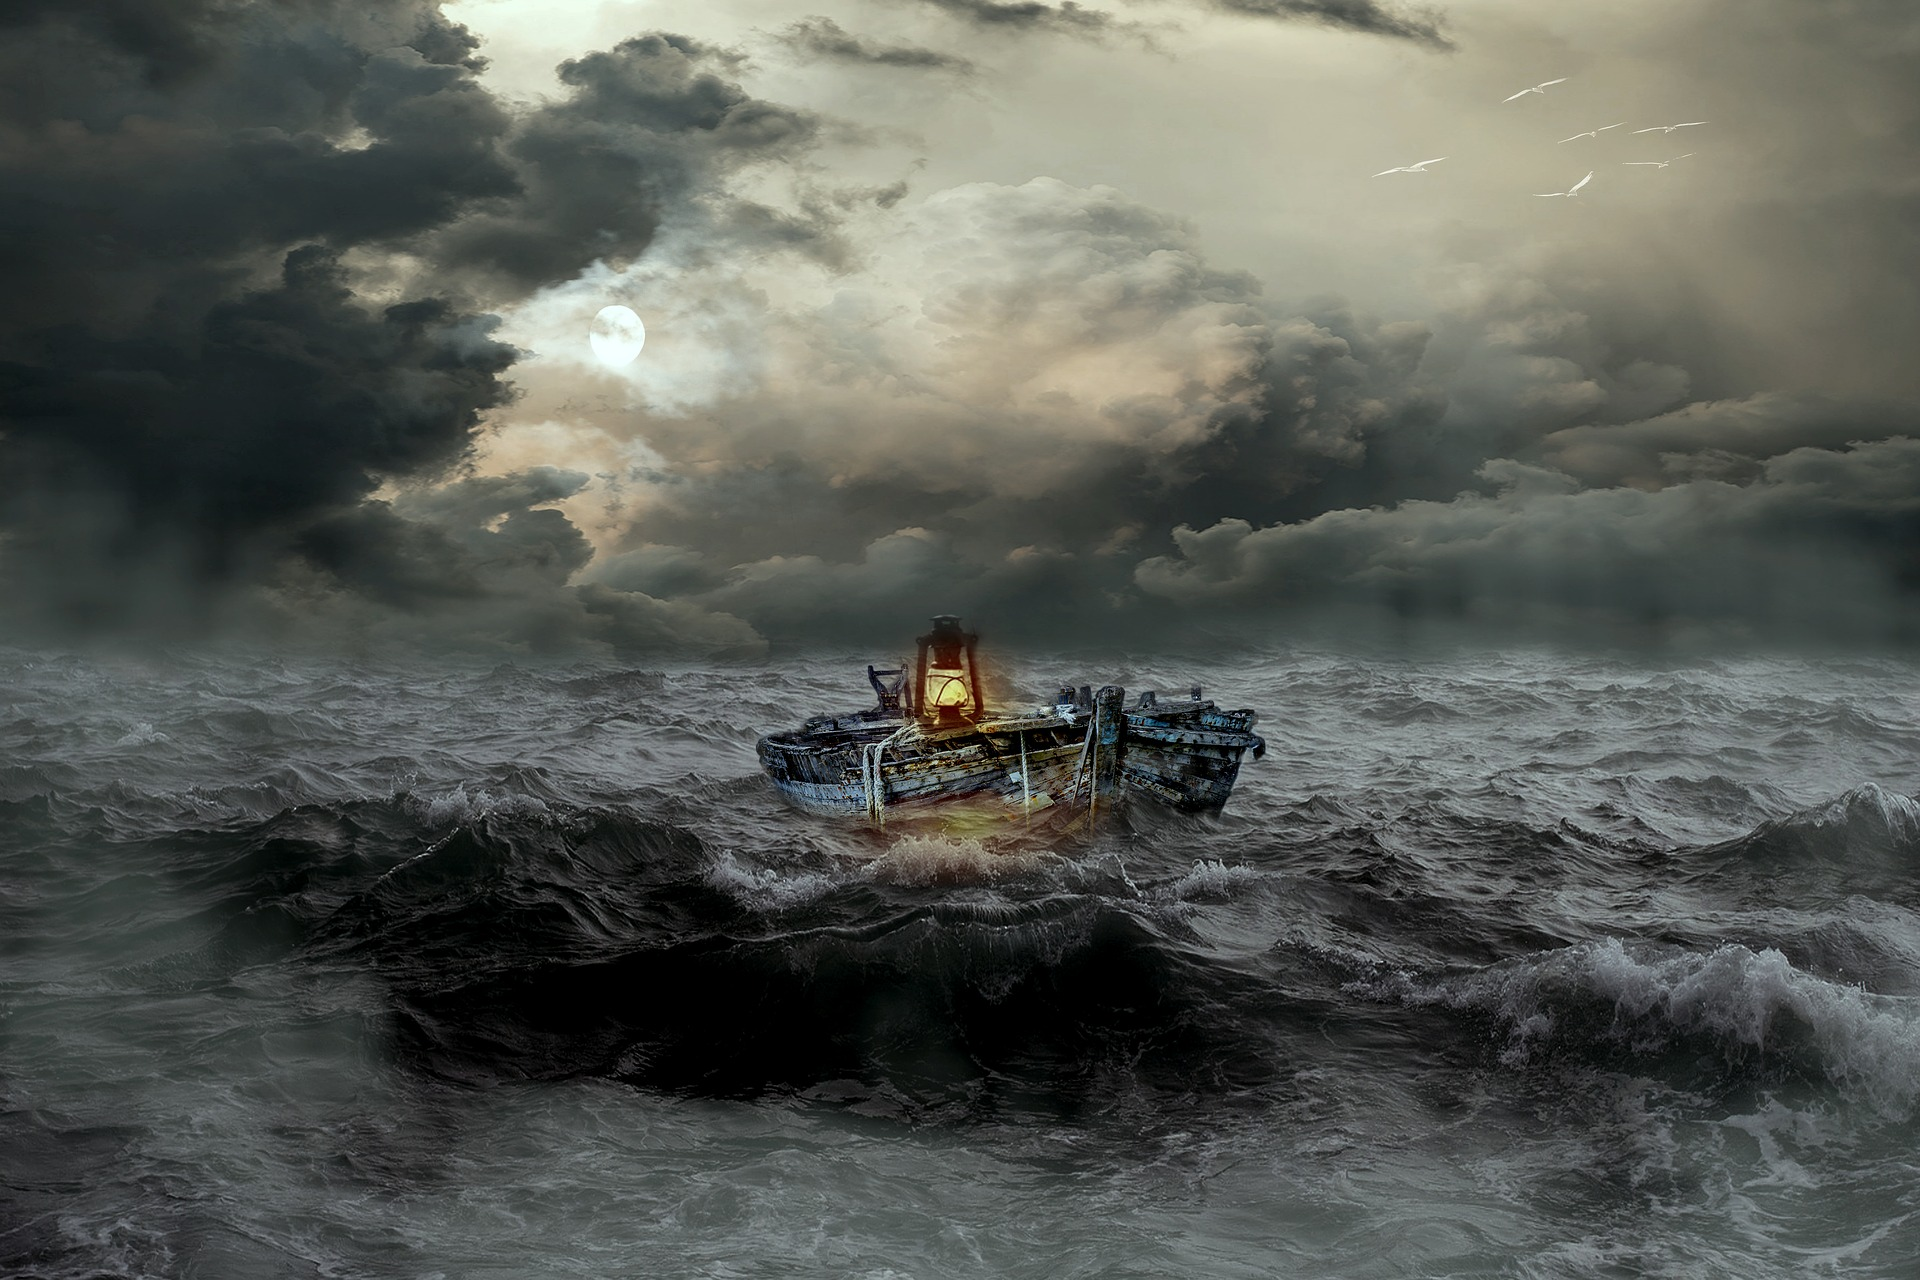 An old boat on the sea at night during a storm.